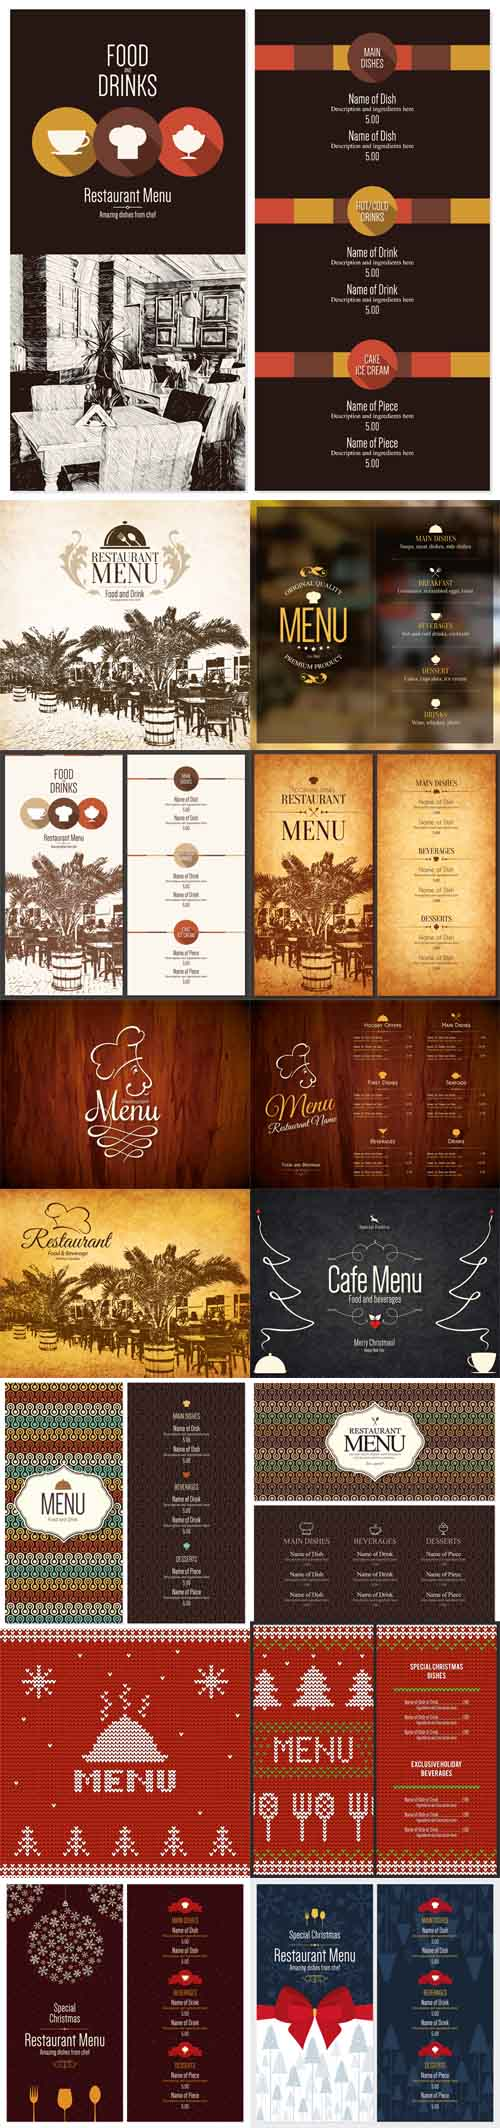 Vector Restaurant menu design, brochure template for cafe, coffee house, restaurant, bar